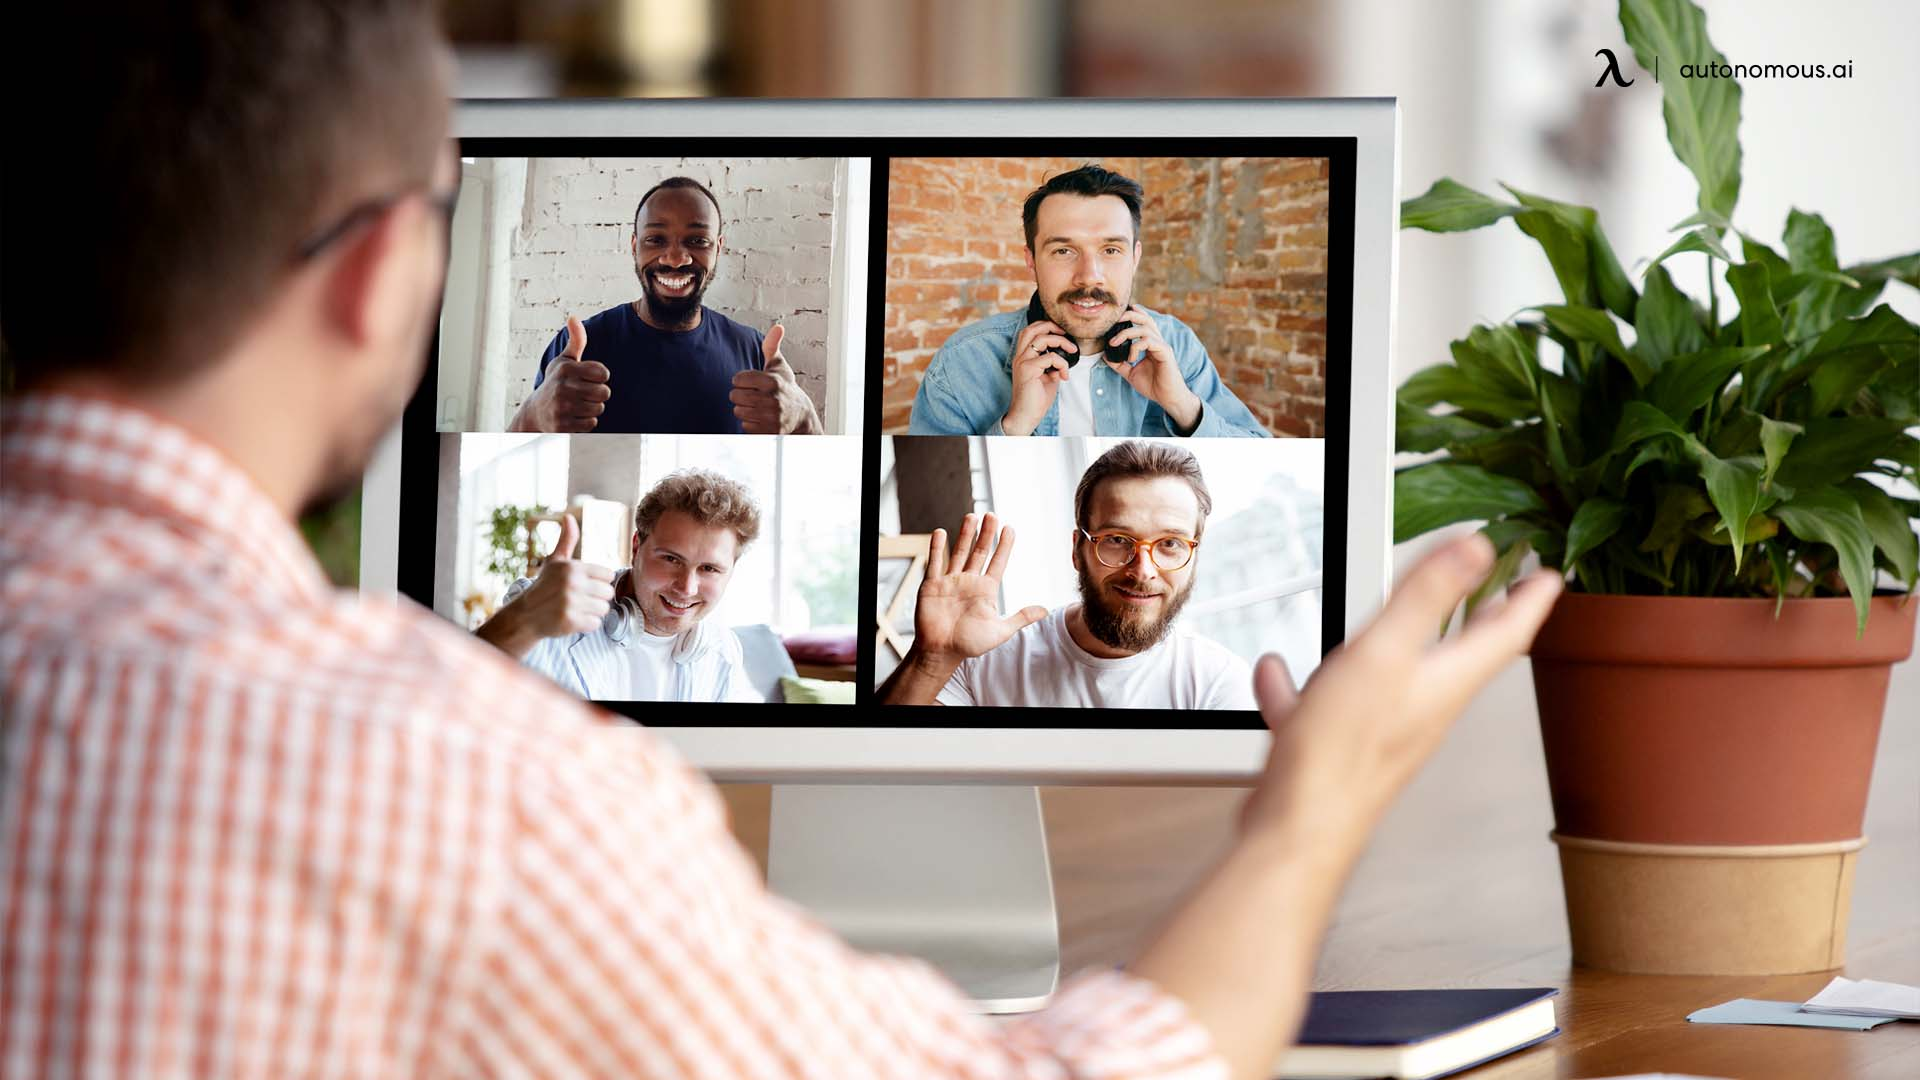 Maintain Your Work Etiquette During Virtual Meetings